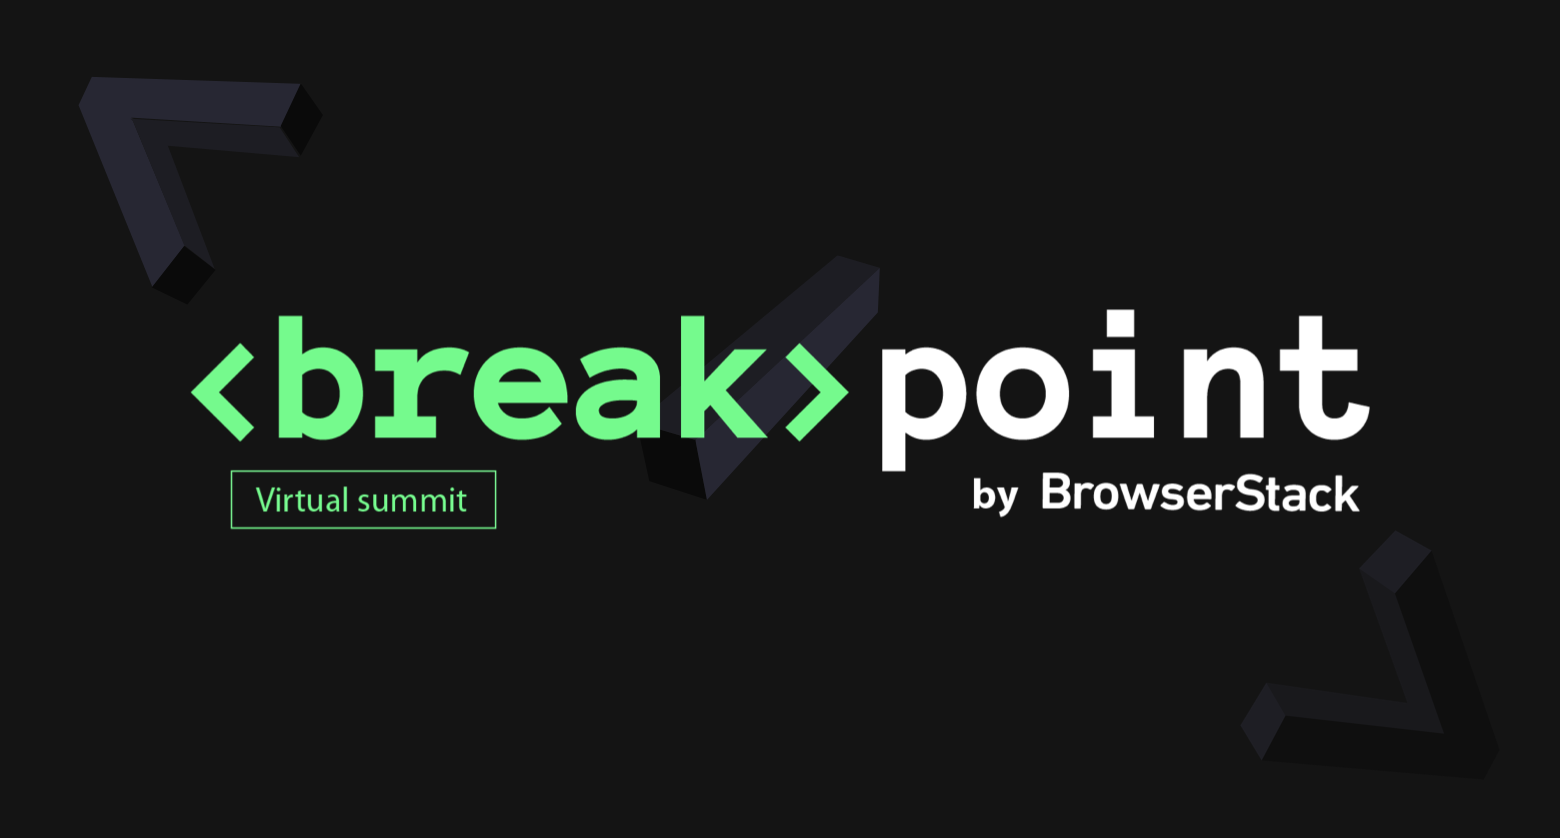 Breakpoint virtual summit 2020